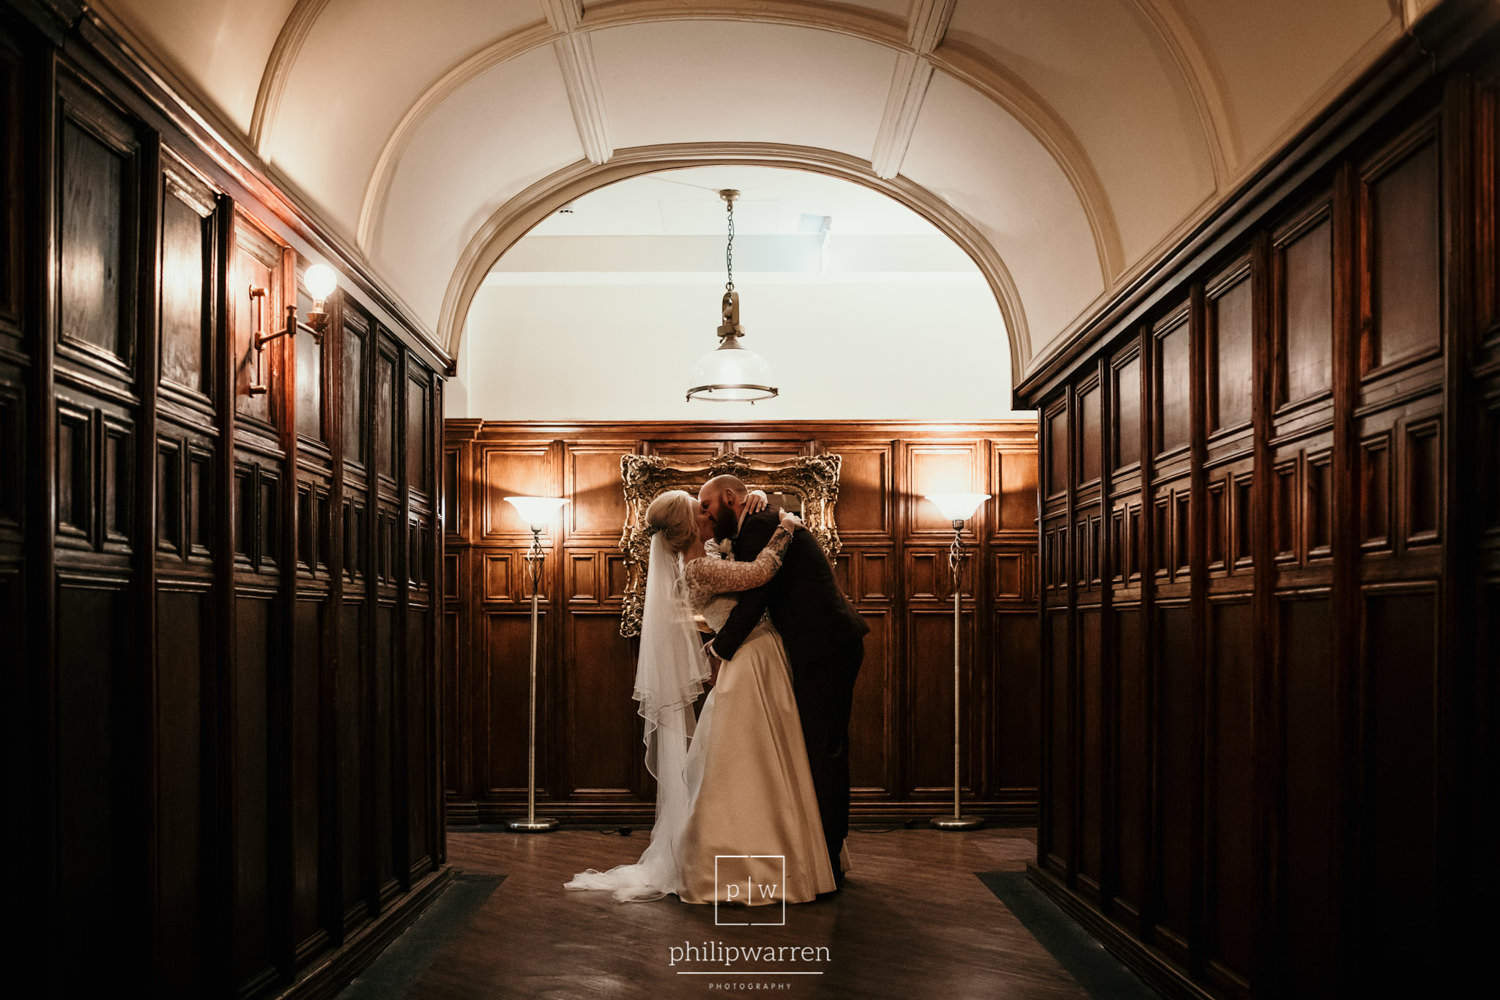 wedding photography in cardiff bay